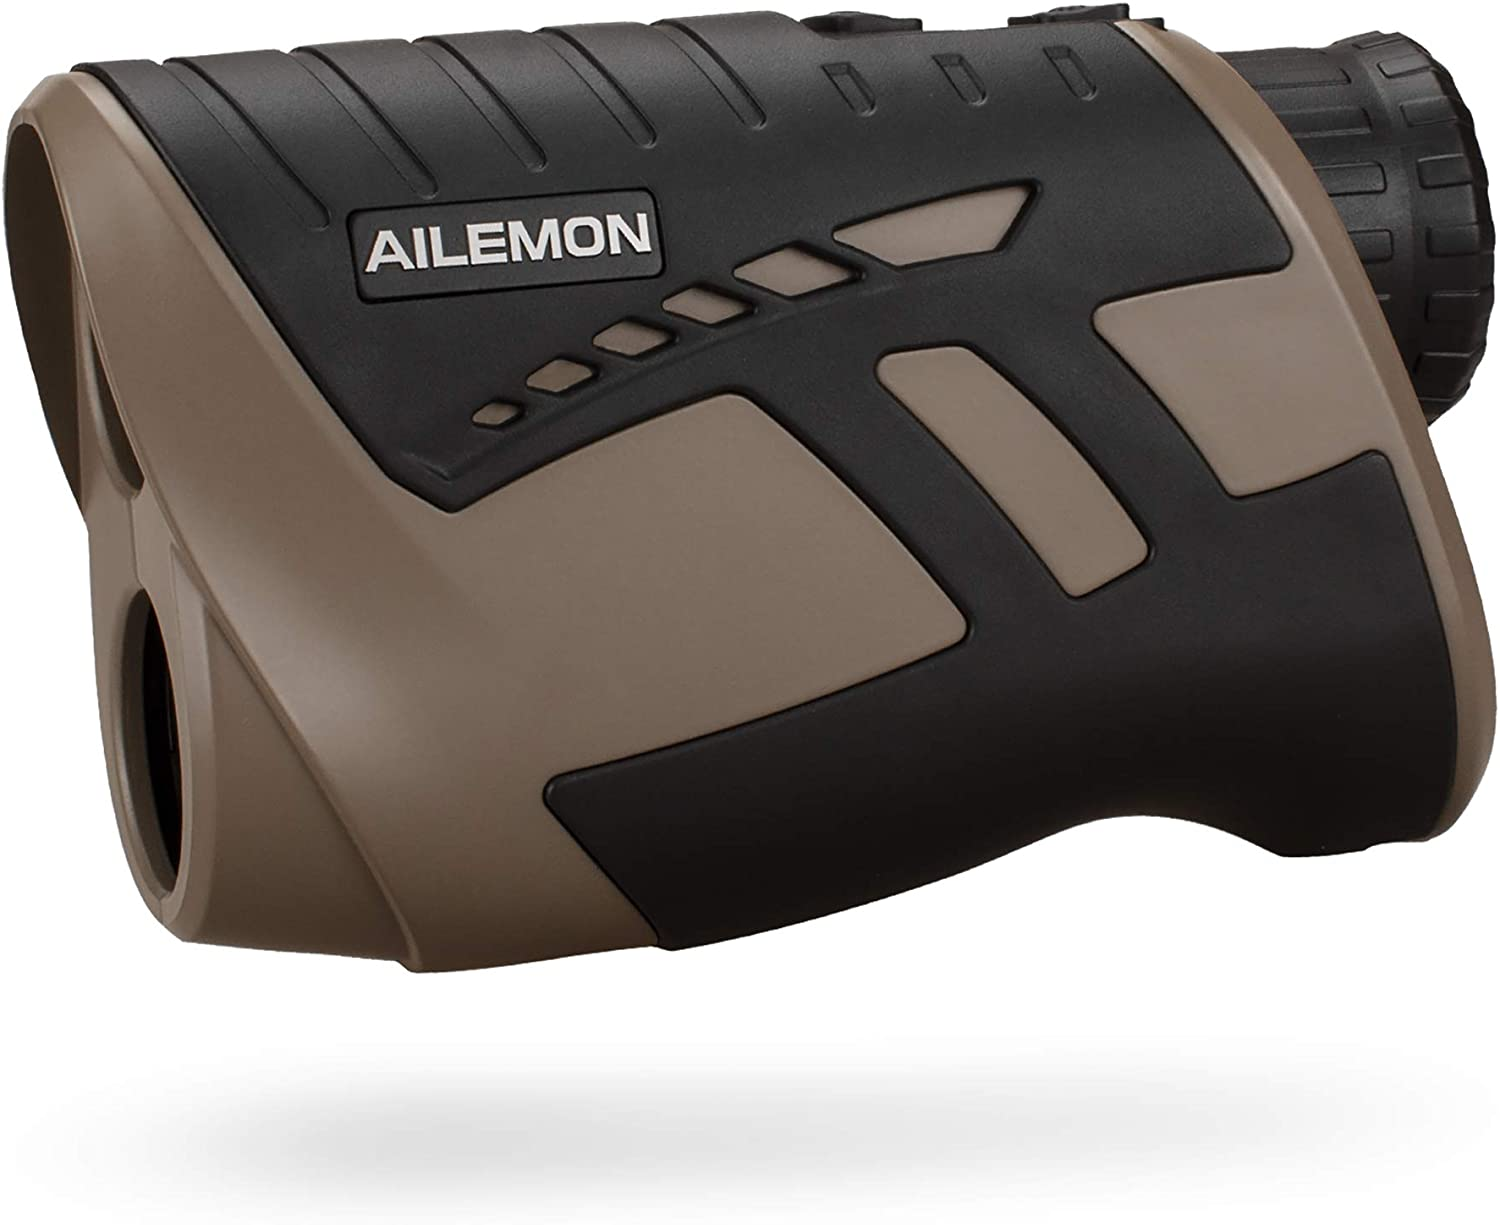 4. AILEMON 6X Golf/Hunting Rangefinder Rechargeable 900Y Distance Measuring Scope.